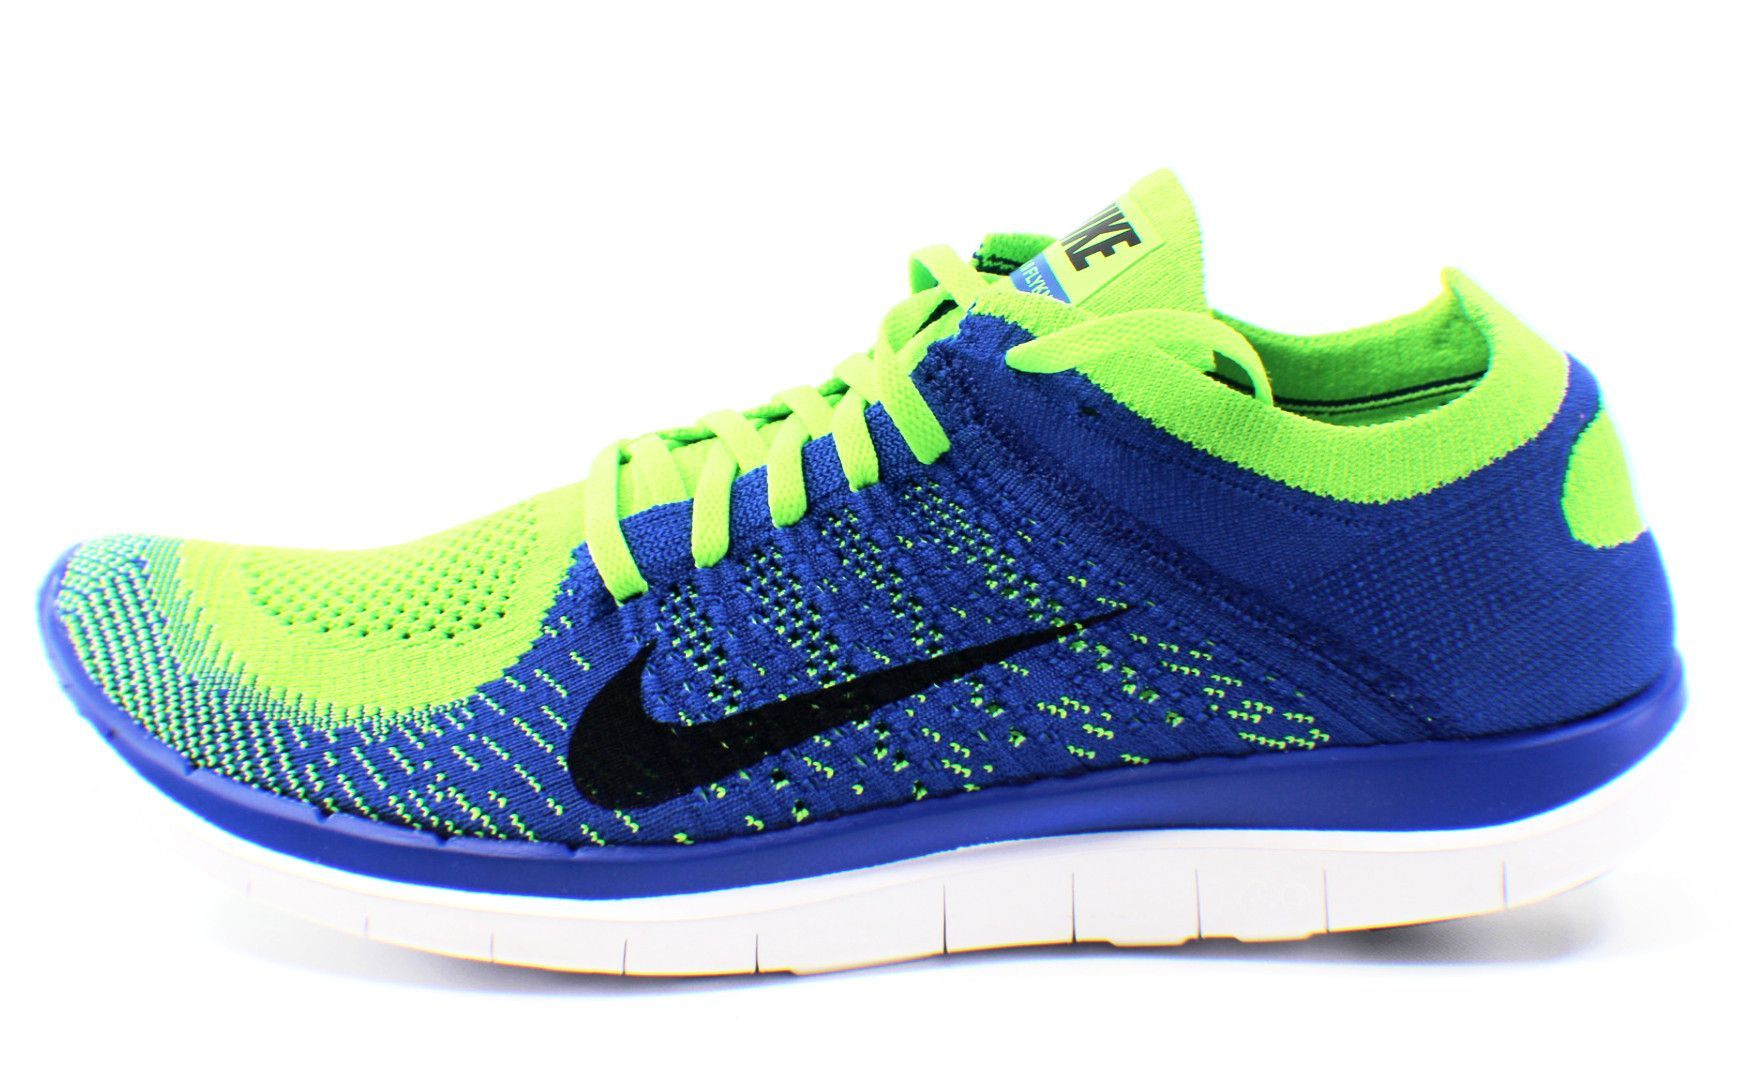 huge discount 49197 32a28 NIKE Free 4.0 Flyknit Size 11.5 (Royal Blue Black Electric Green)